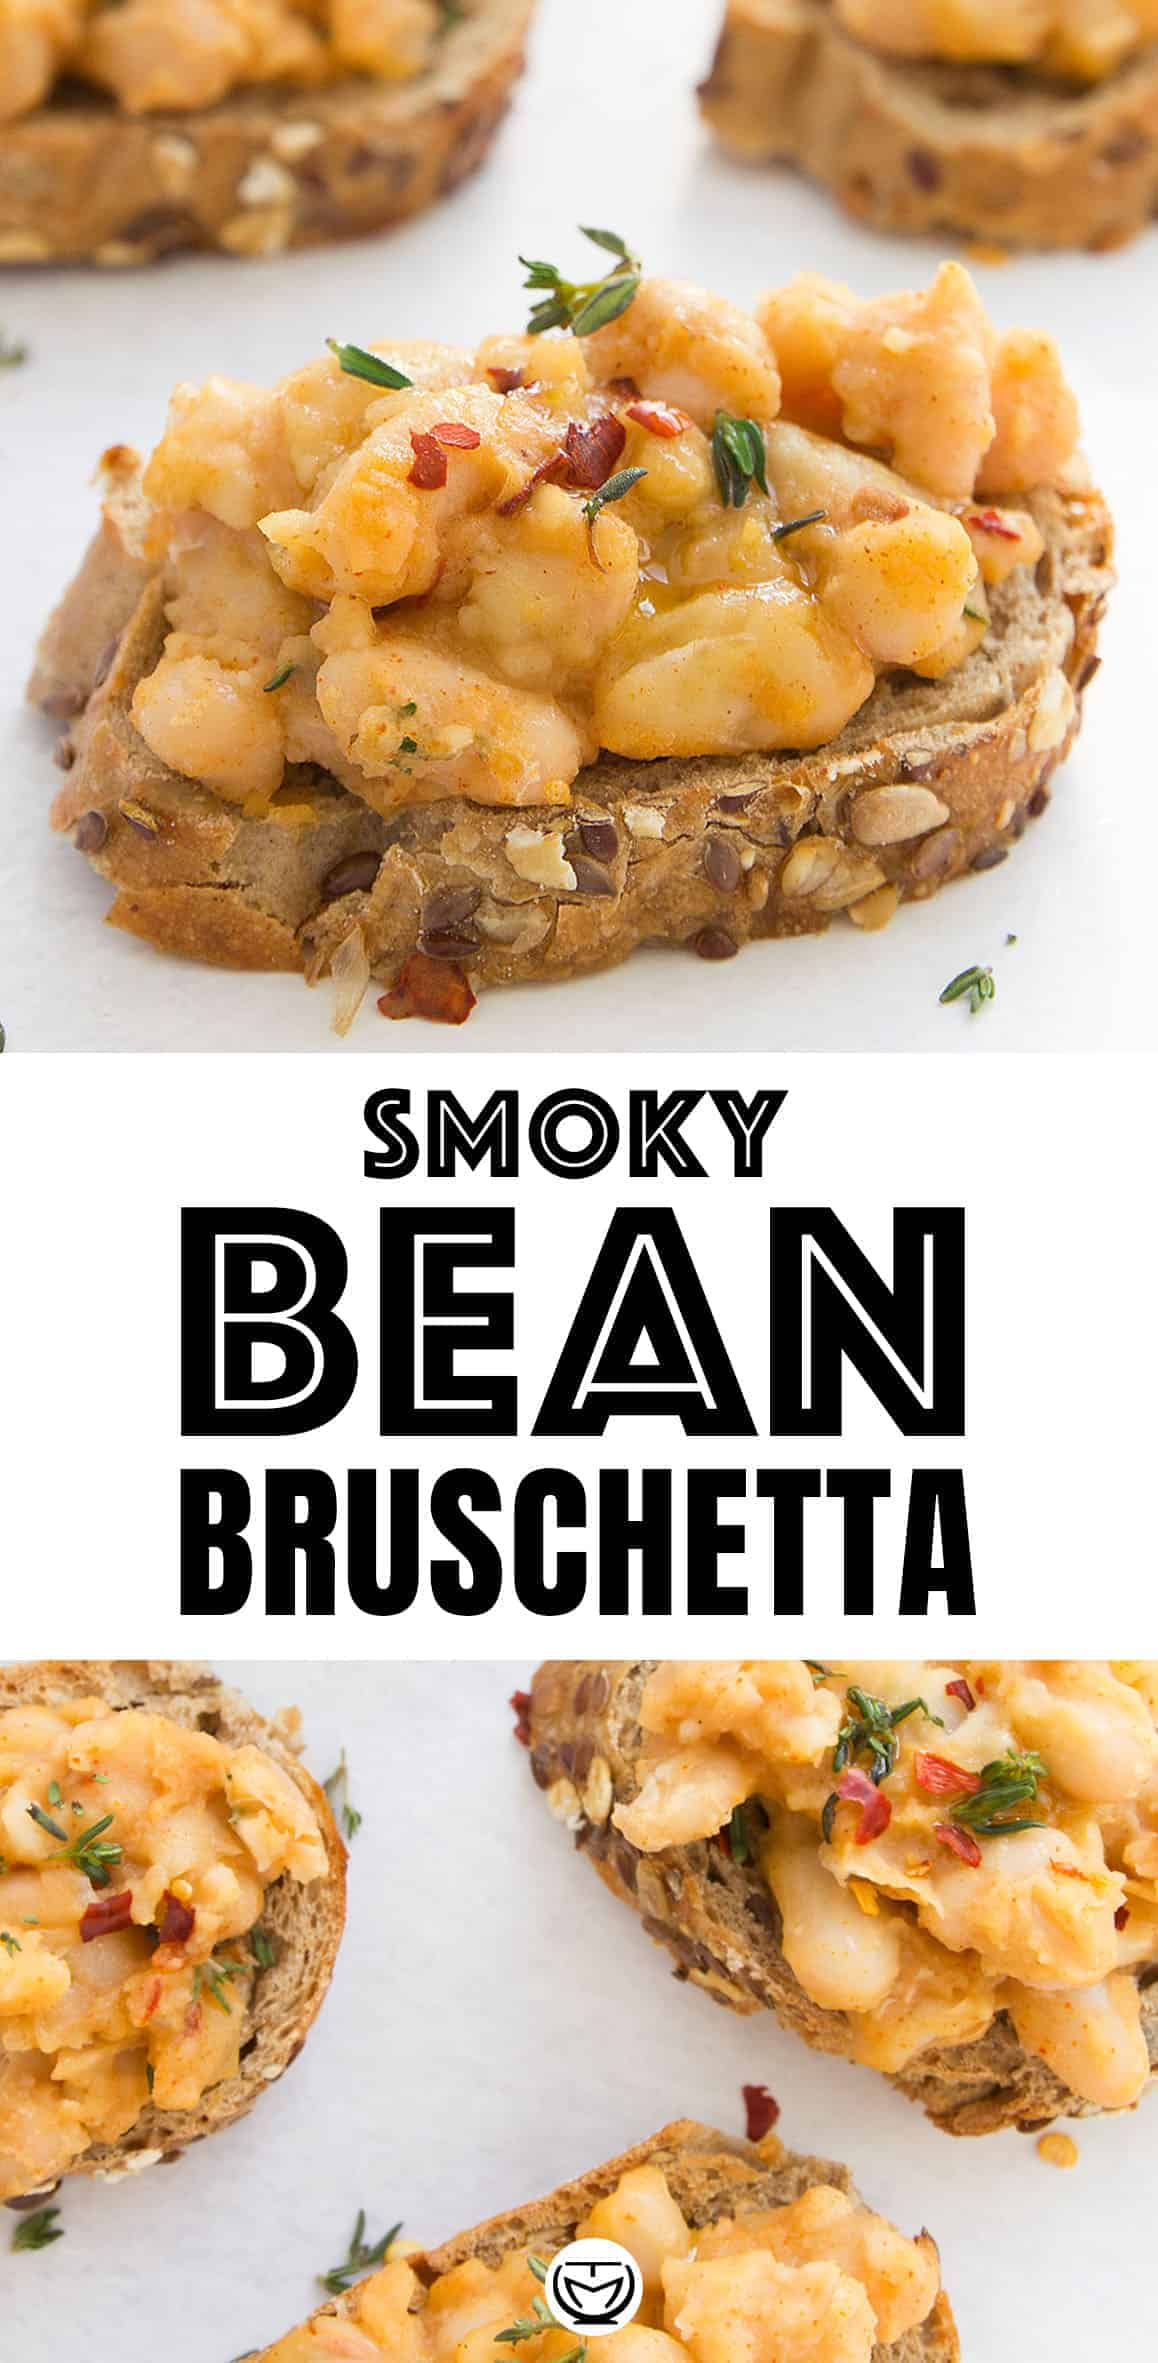 These delicious and flavorsome smoky beans on toast make an awesome vegan bruschetta, party appetizer, or last minute meal.